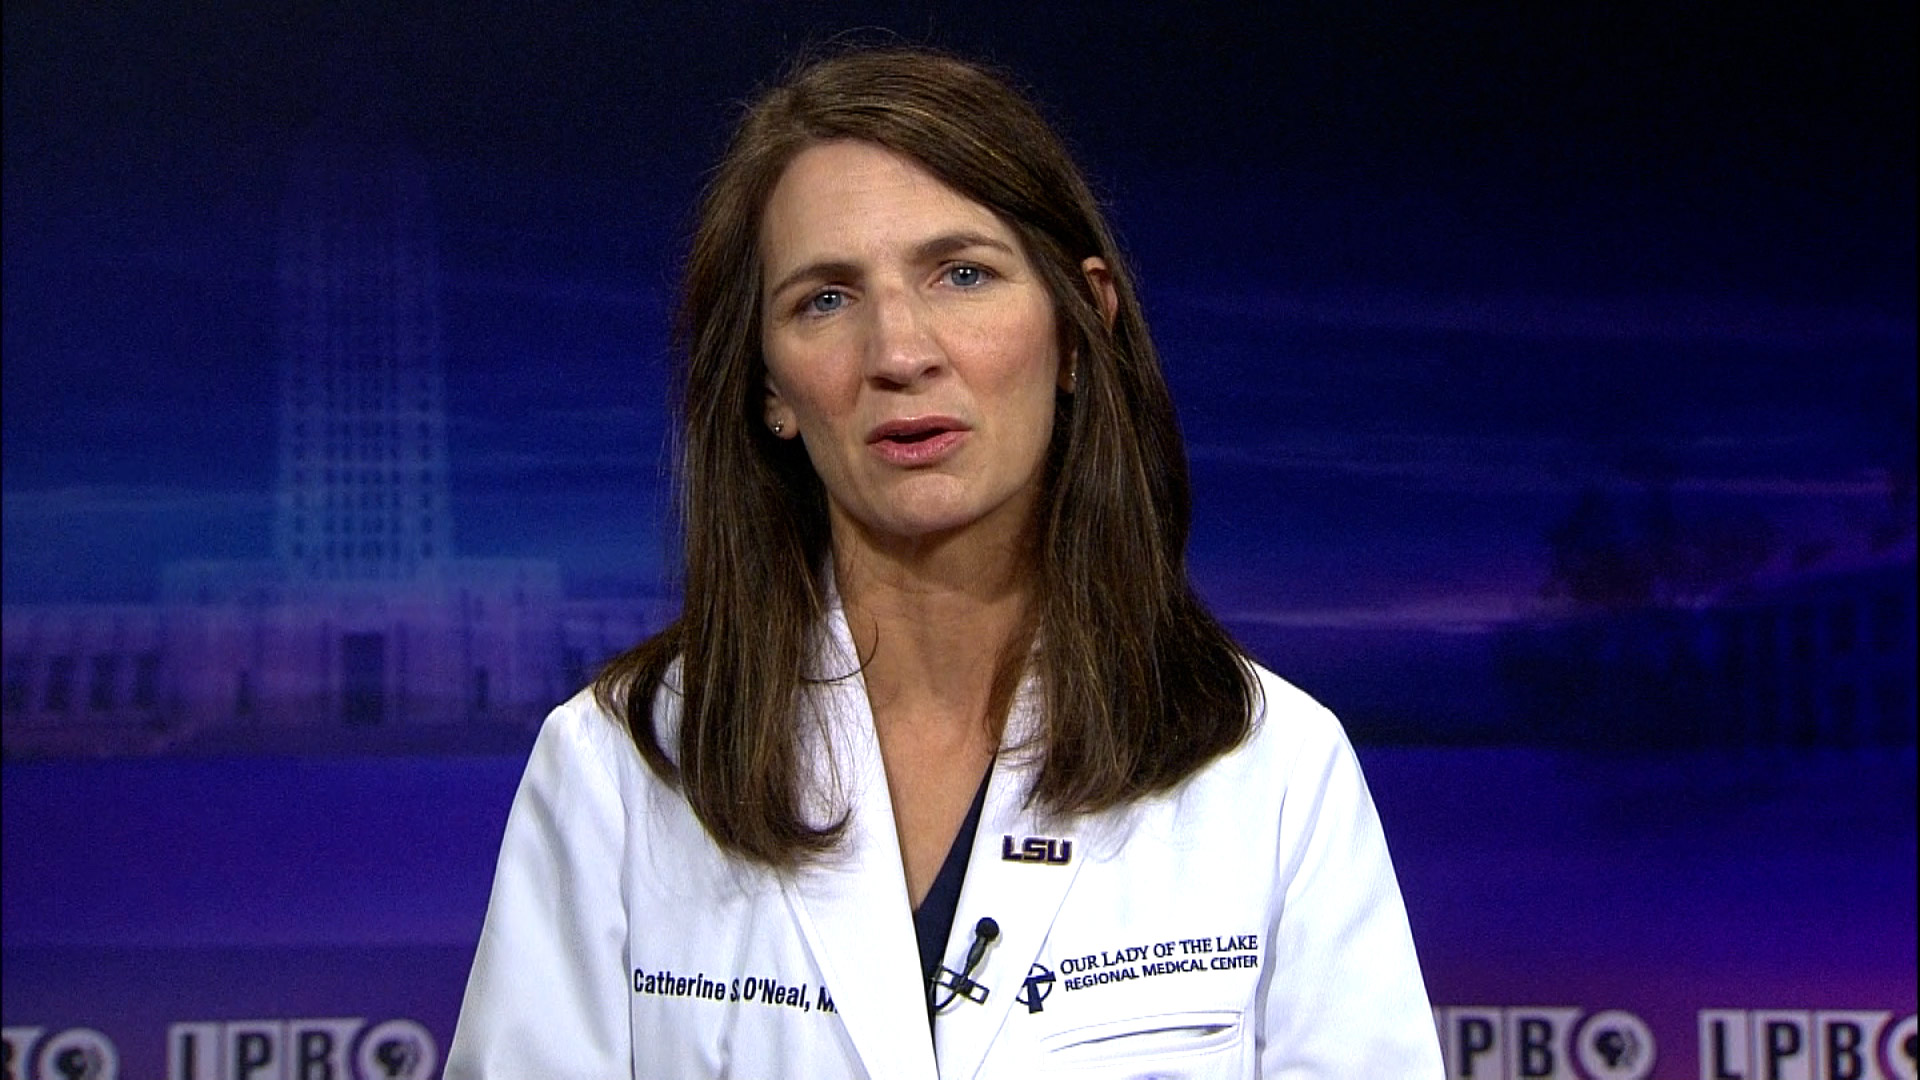 Dr. Catherine O'Neal